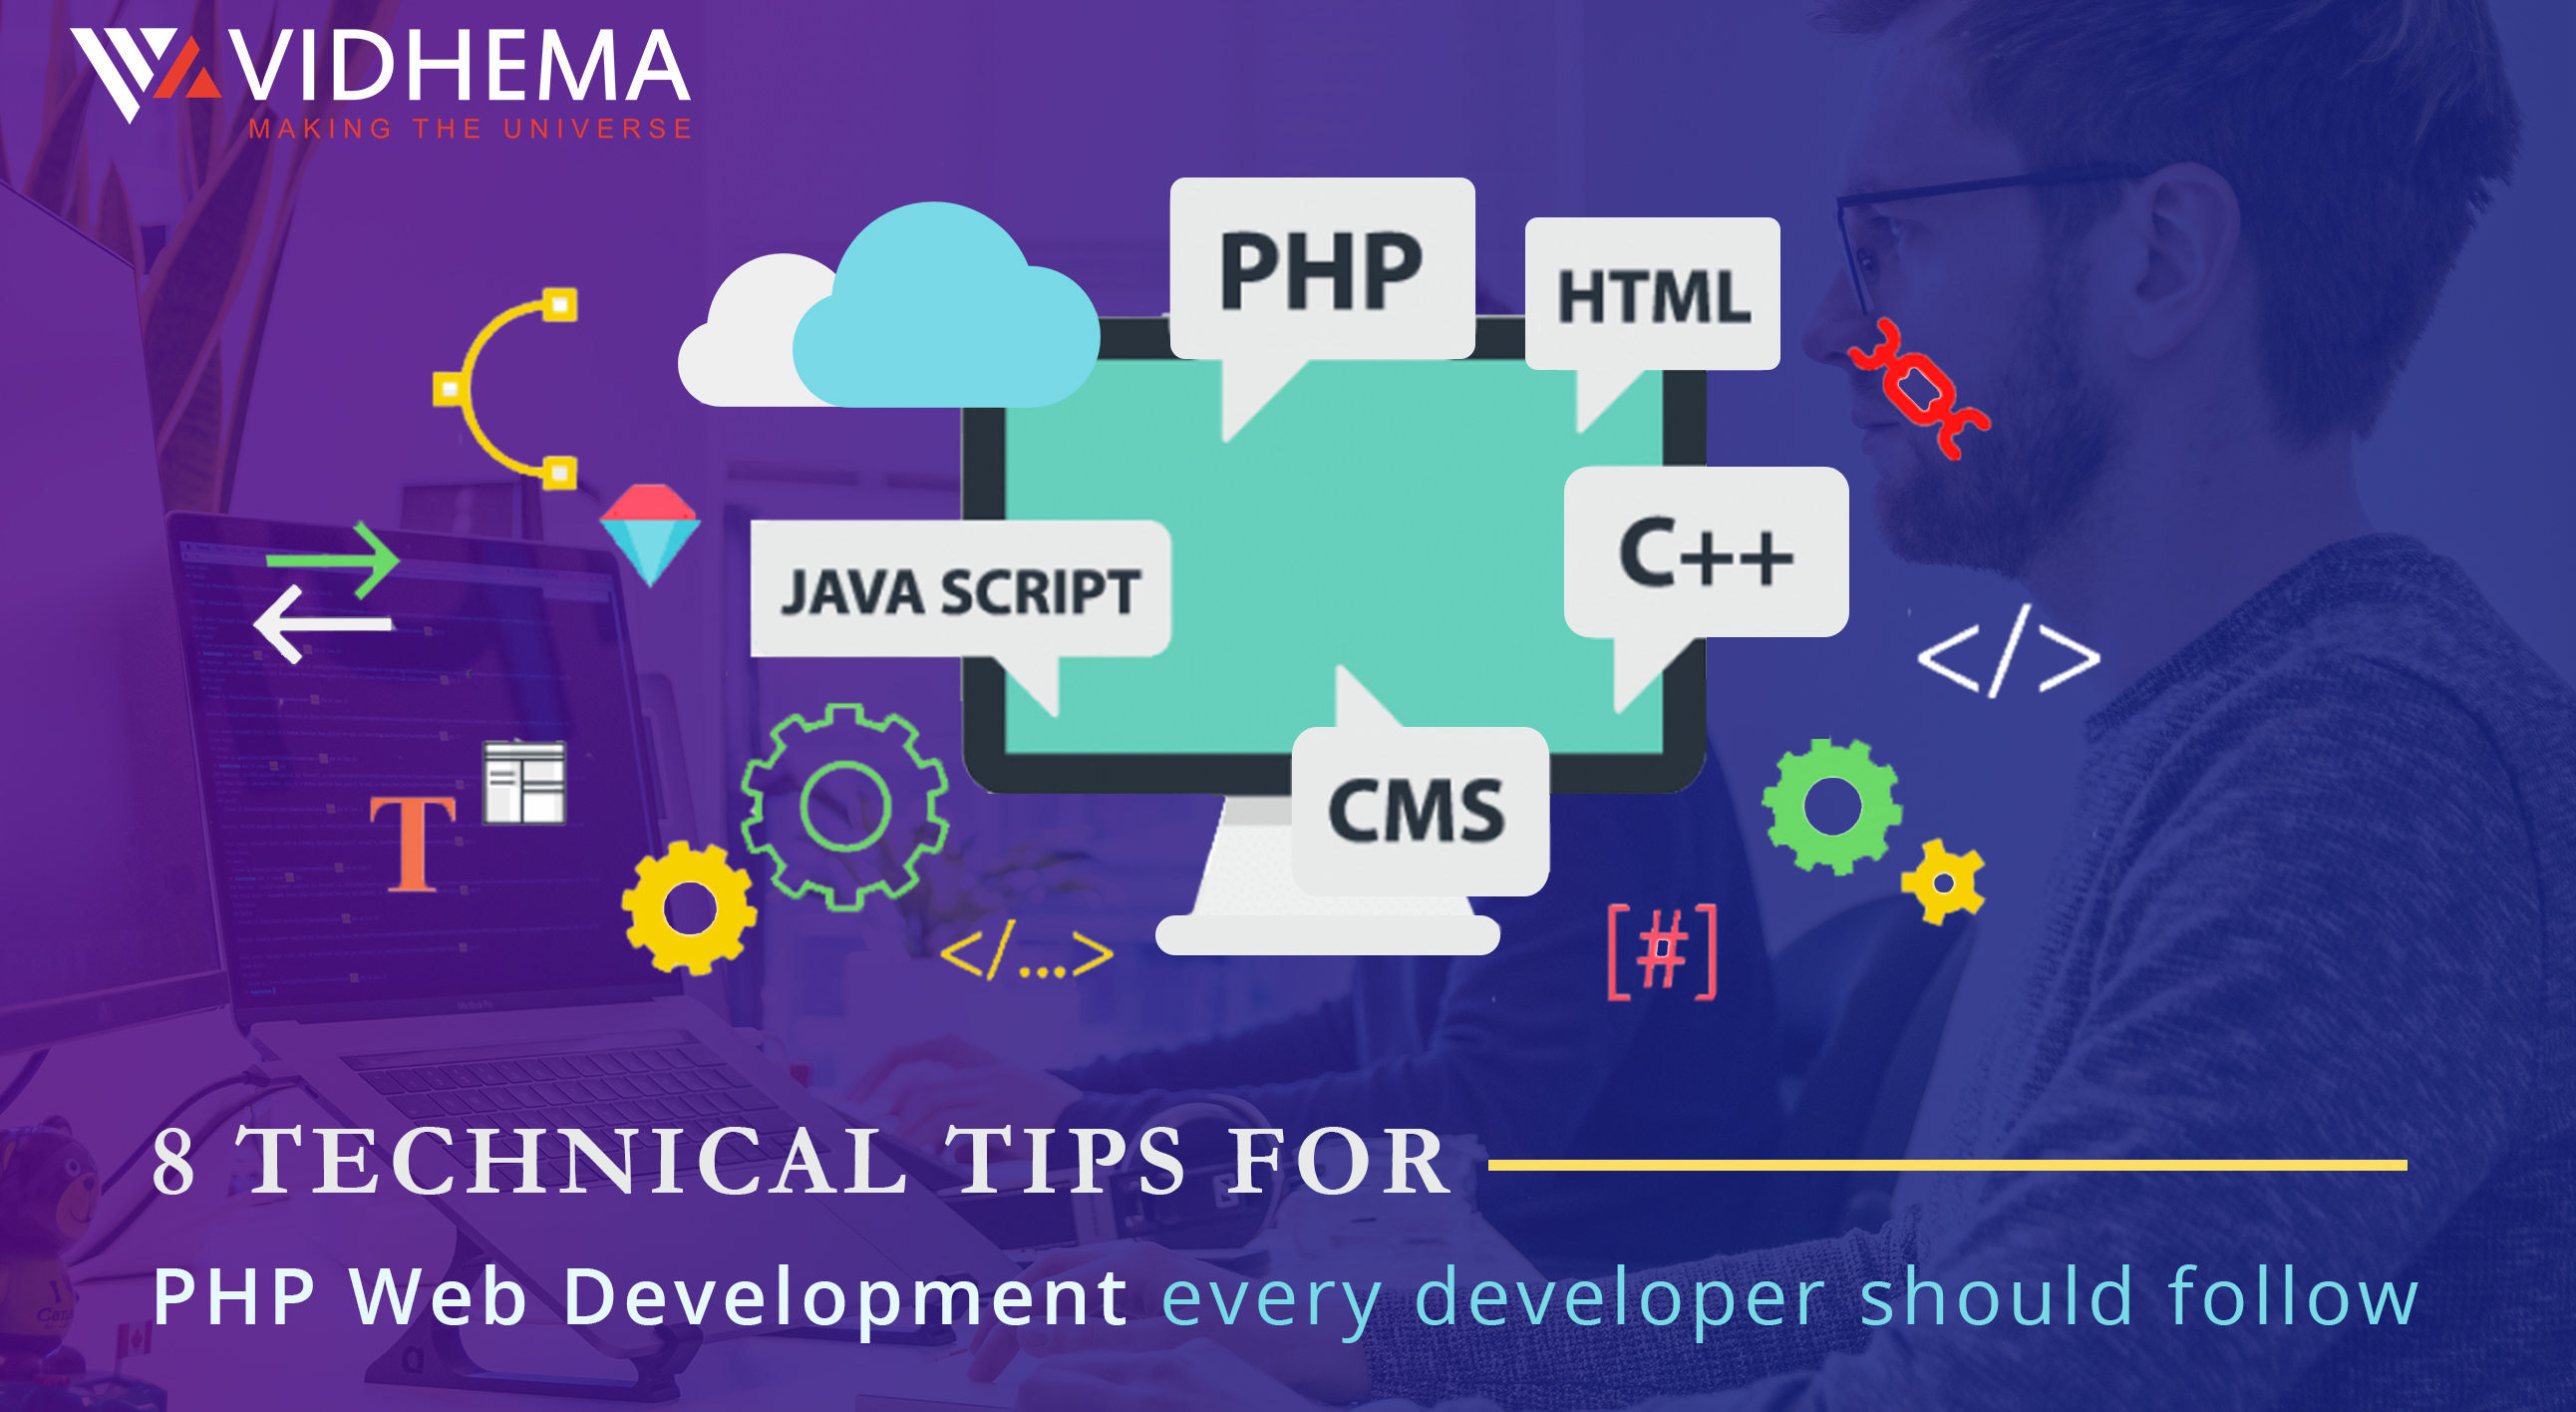 8 Technical tips for PHP Web Development every developer should follow in 2020